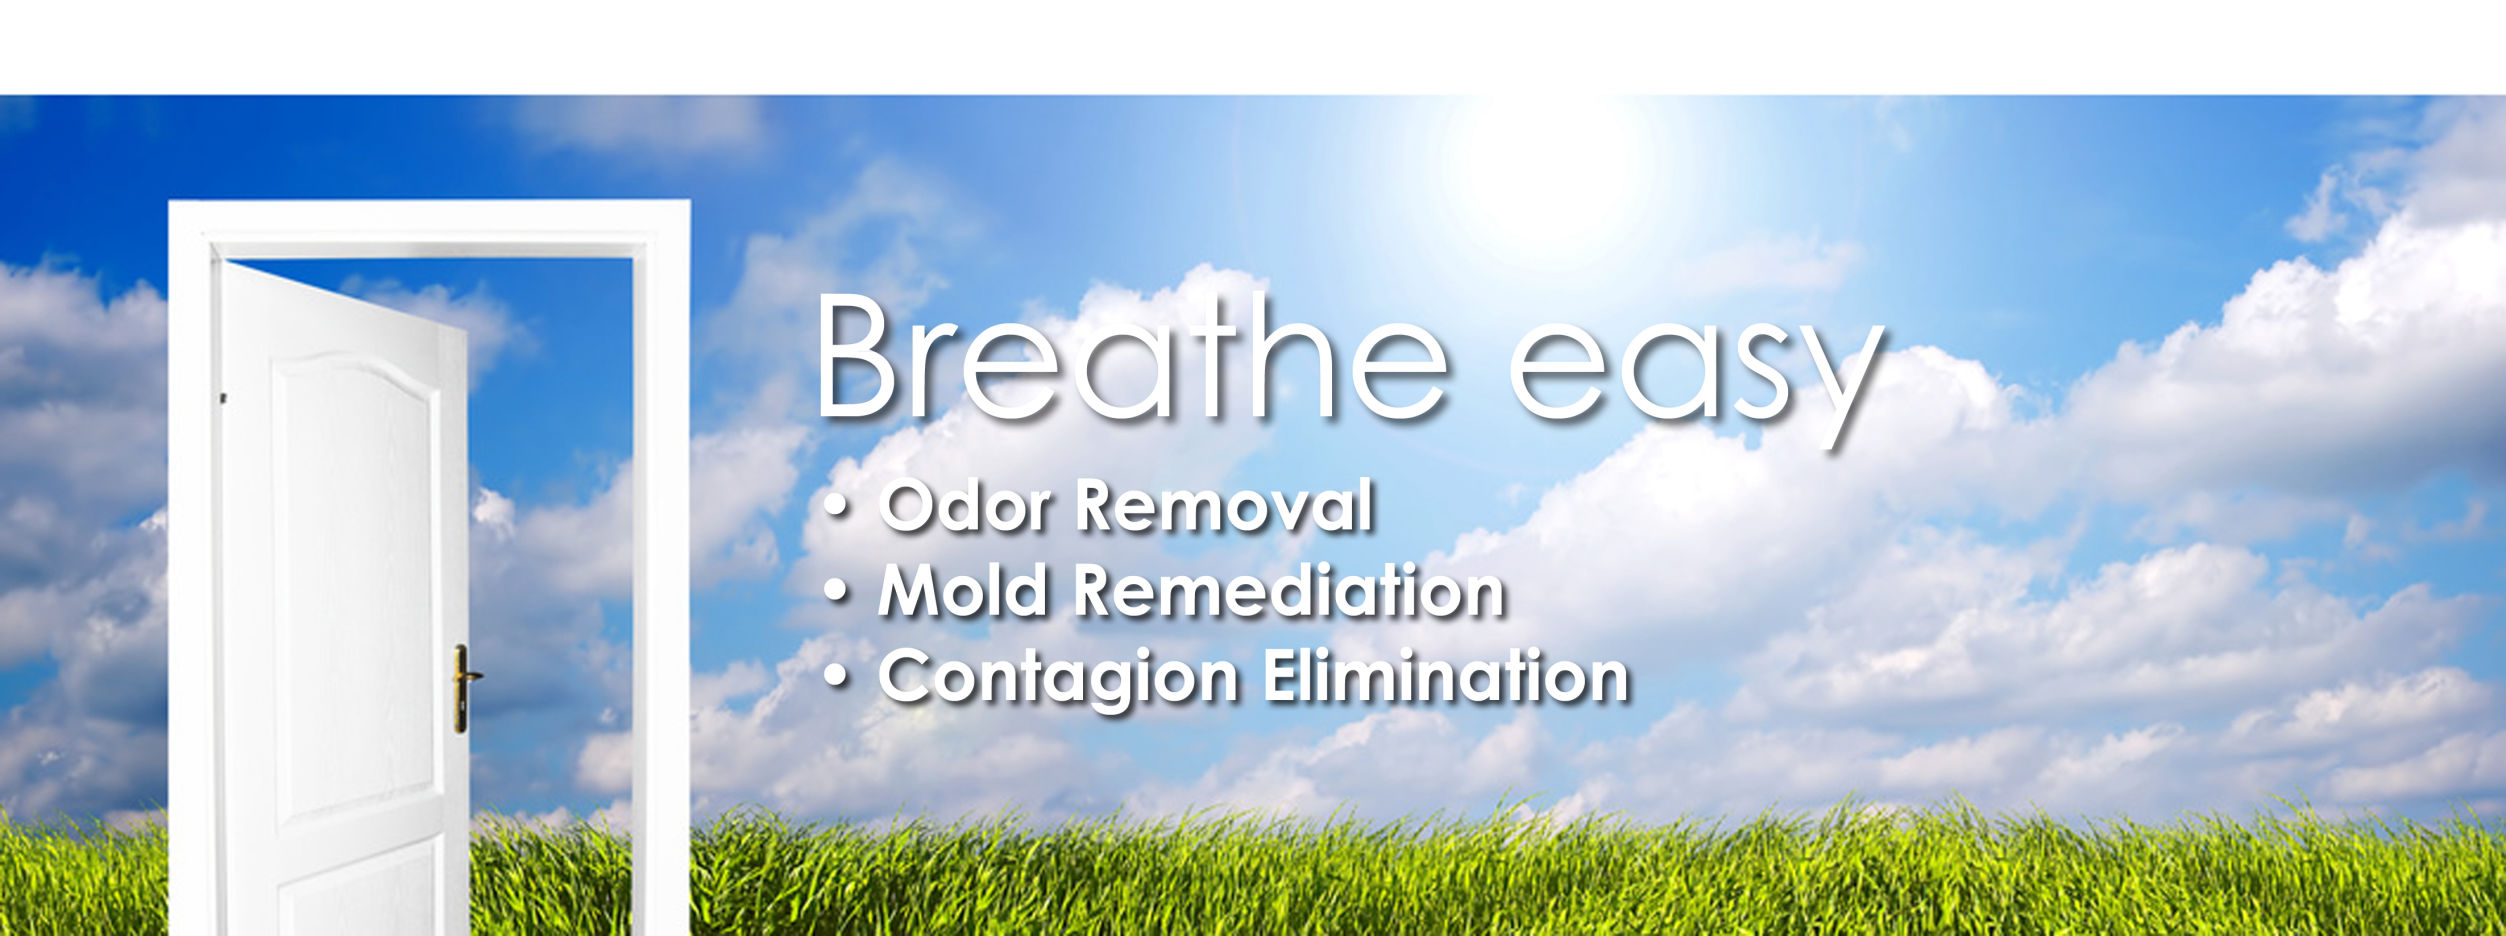 Odor removal, mold remediation, contagion and allergen elimination in Philadelphia, Bucks County